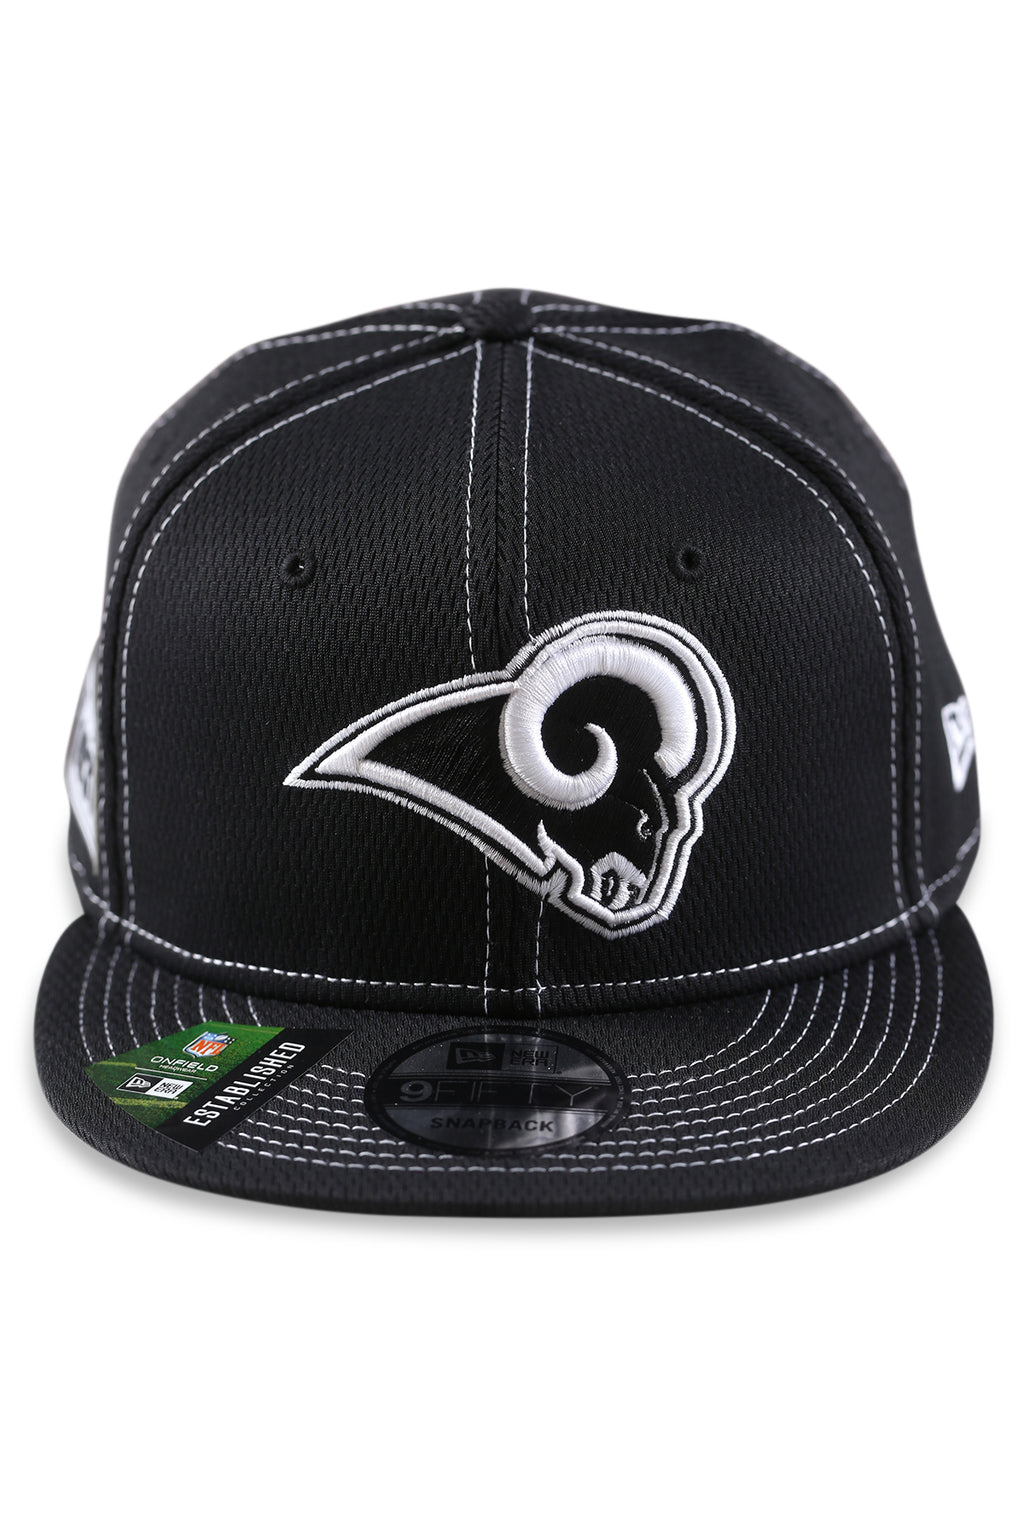 New Era 950 LA Rams NFL Sideline Black Snapback